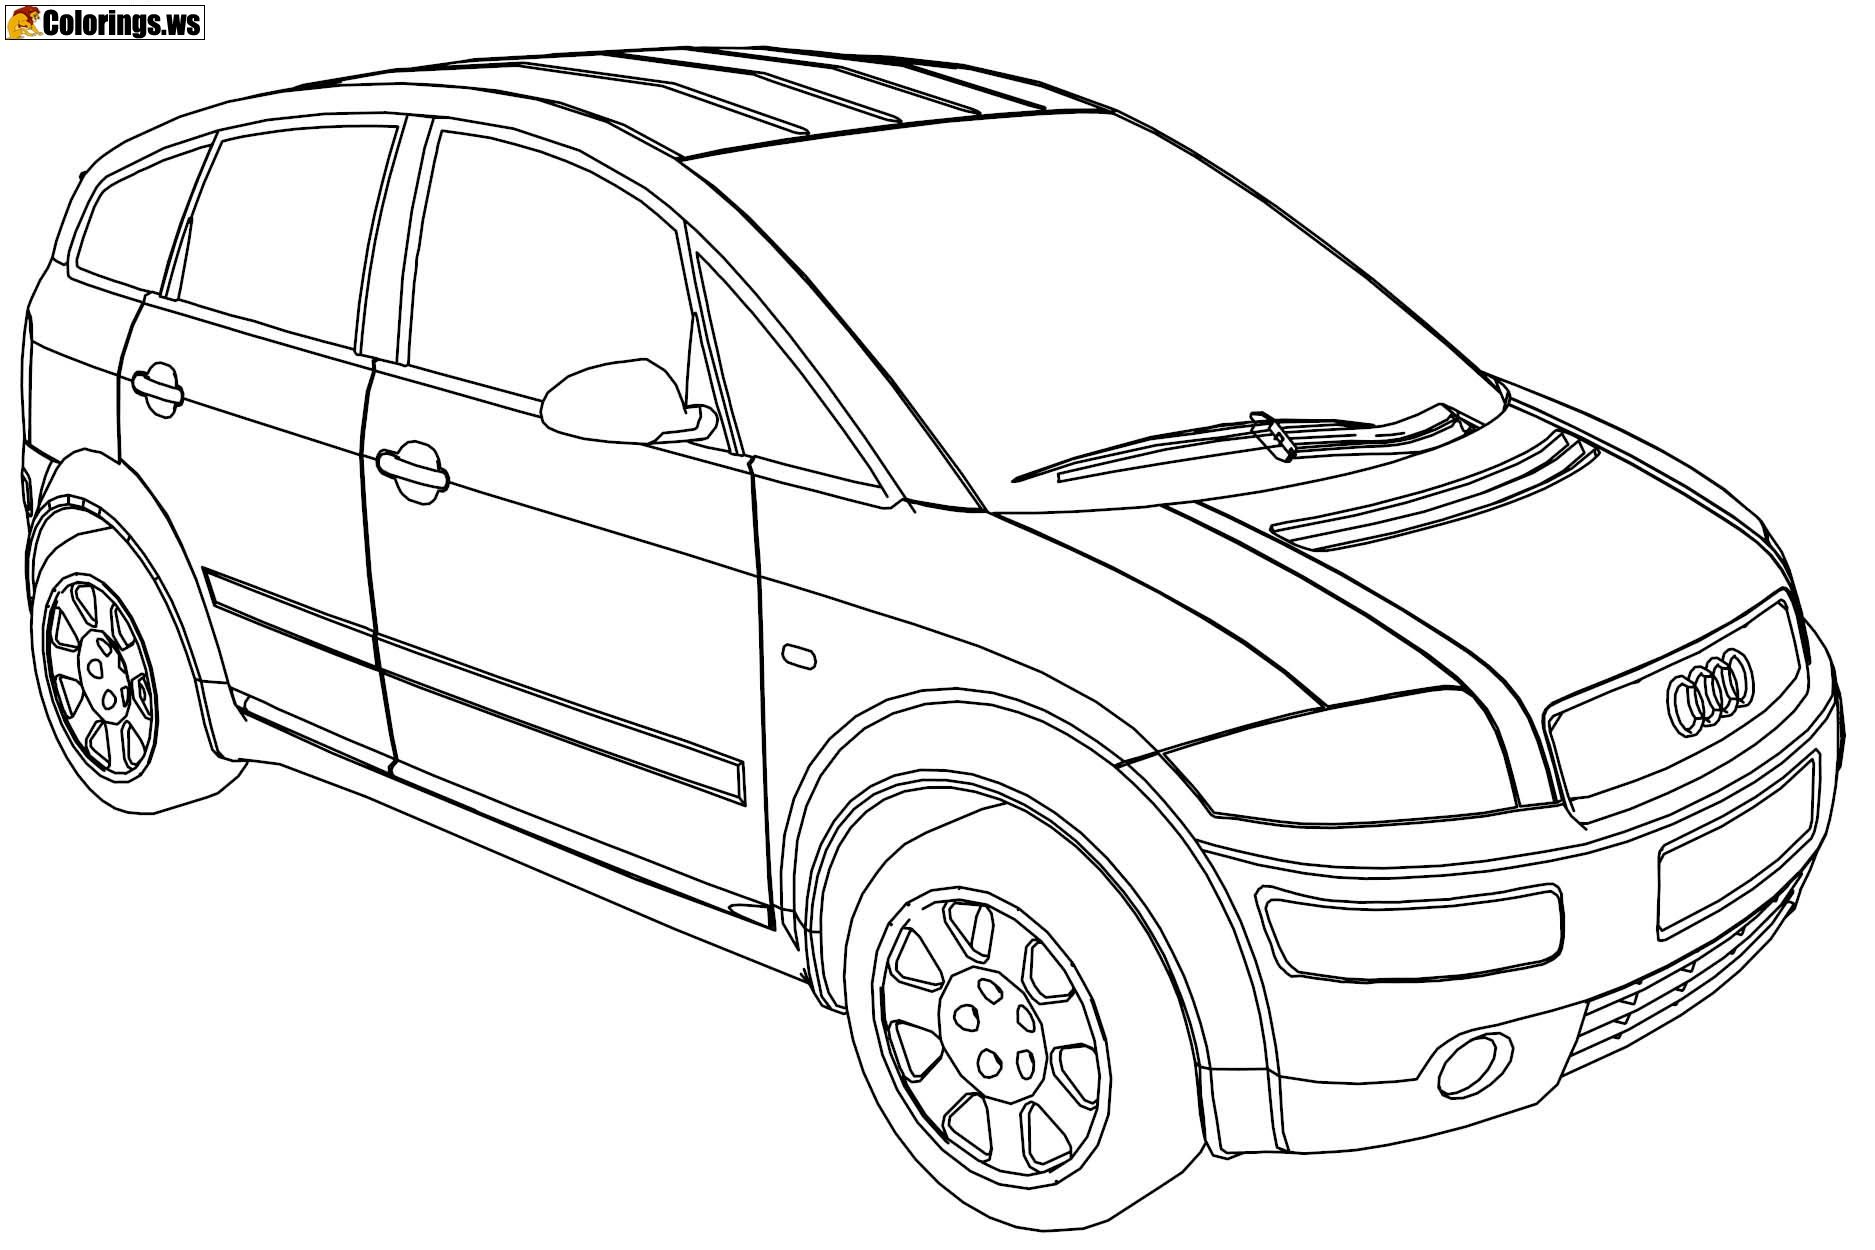 audi coloring sheet audi a8 2018 front view coloring page free 2018 audi coloring sheet audi